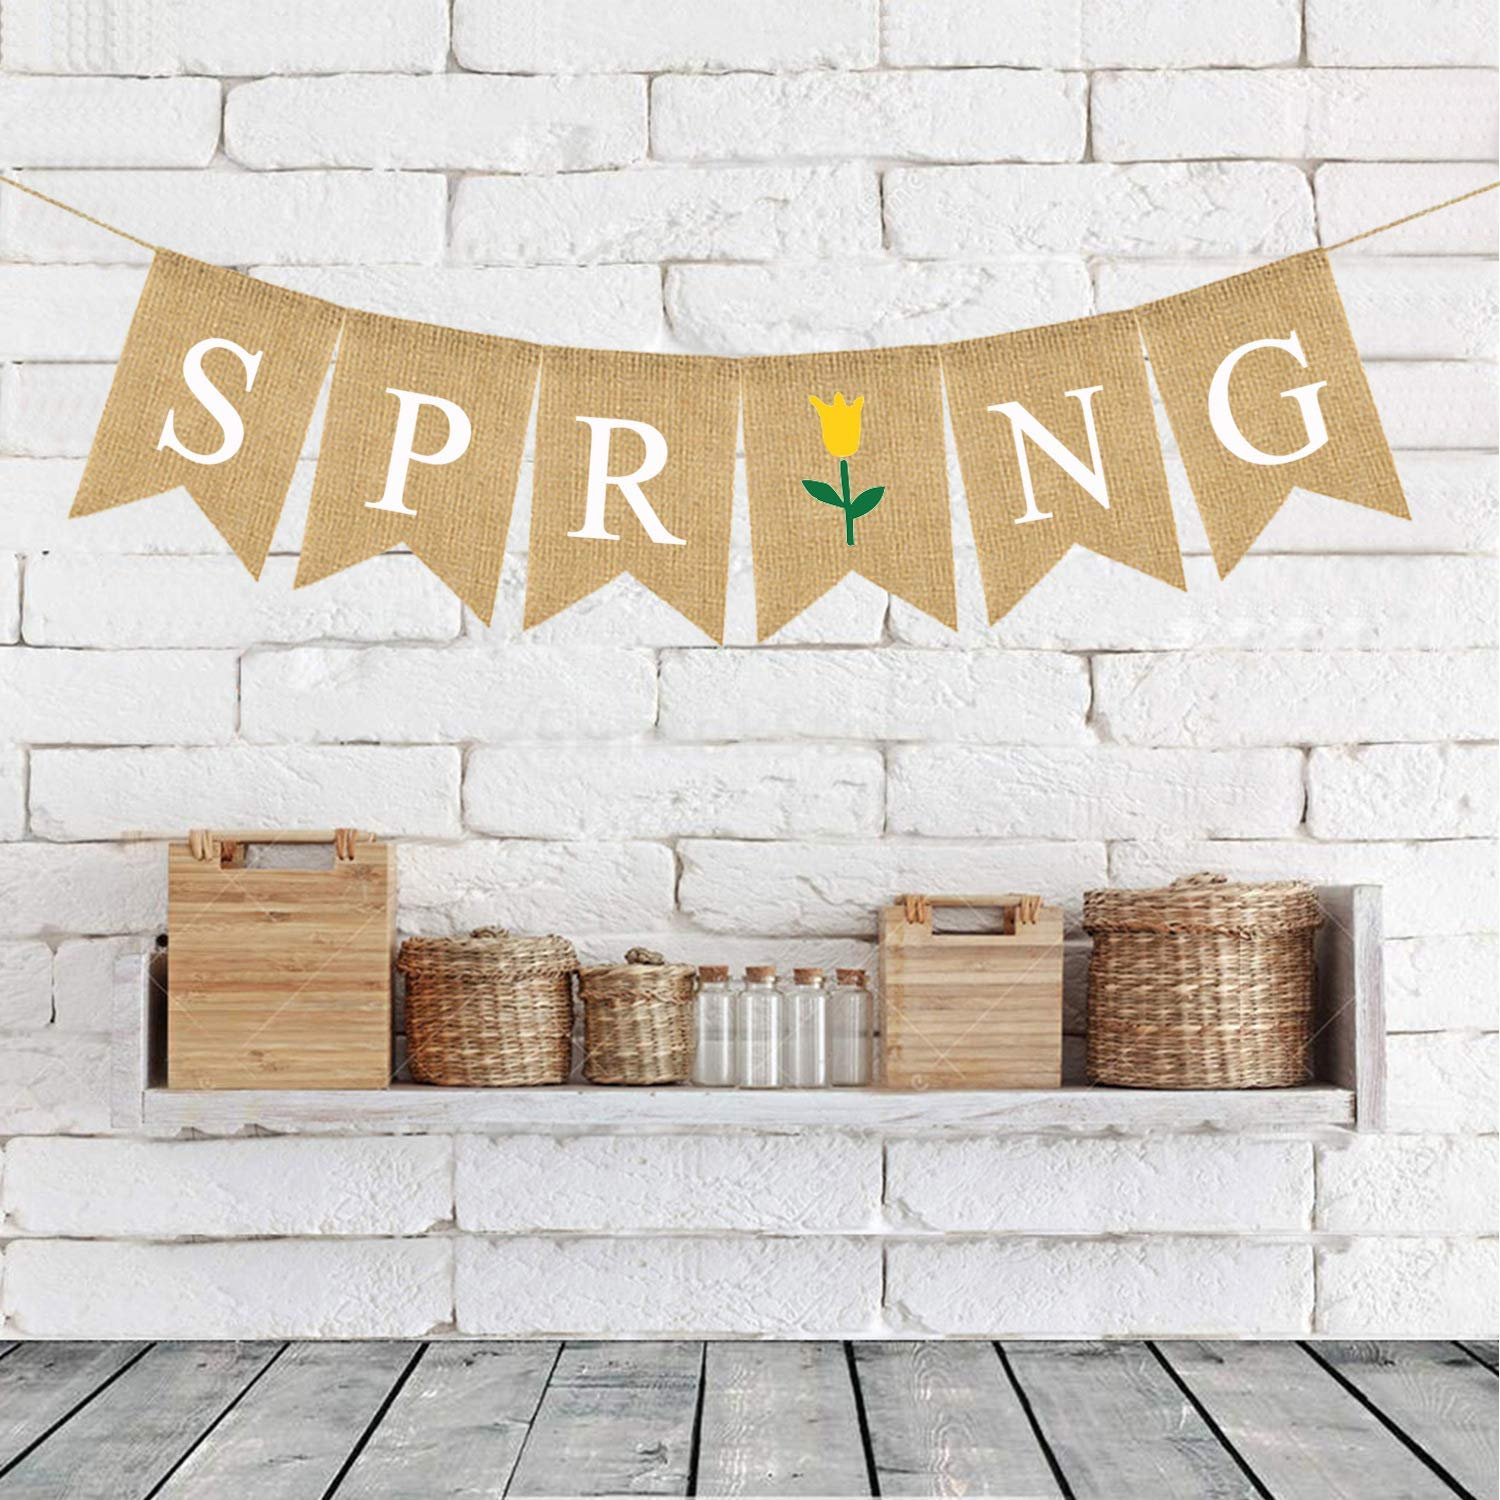 Rustic Burlap Wall Hanging Banner Garland Hello Spring Banner Decoration Welcome Spring Banner Signs Swallowtail Letters Flag Seasonal Home Decors for Fireplace Mantel Garden Indoor Outdoor